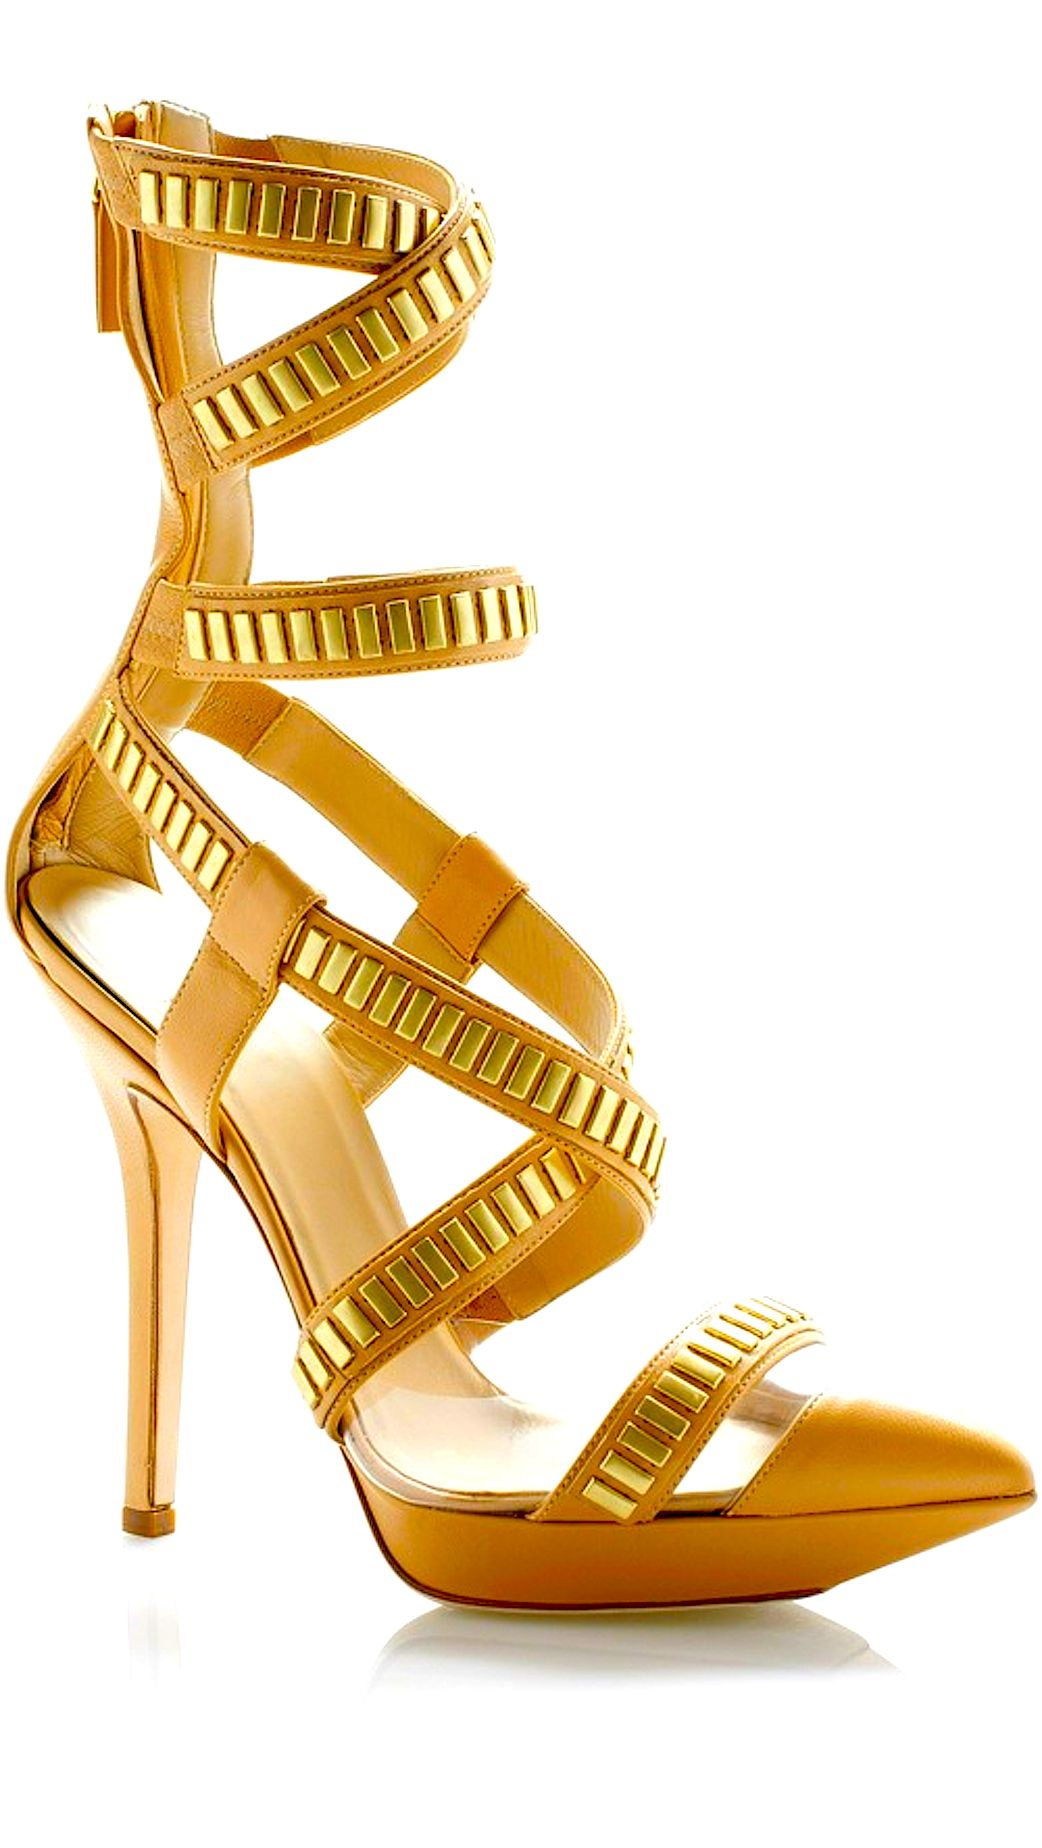 Versace shoes. Goddess Aphrodite shoes fit for an Aphrodite University student. Become a rich metaphysical woman. You love to live High-Healed Priestess style. Pinned on behalf of www.aphroditeuniversity.org